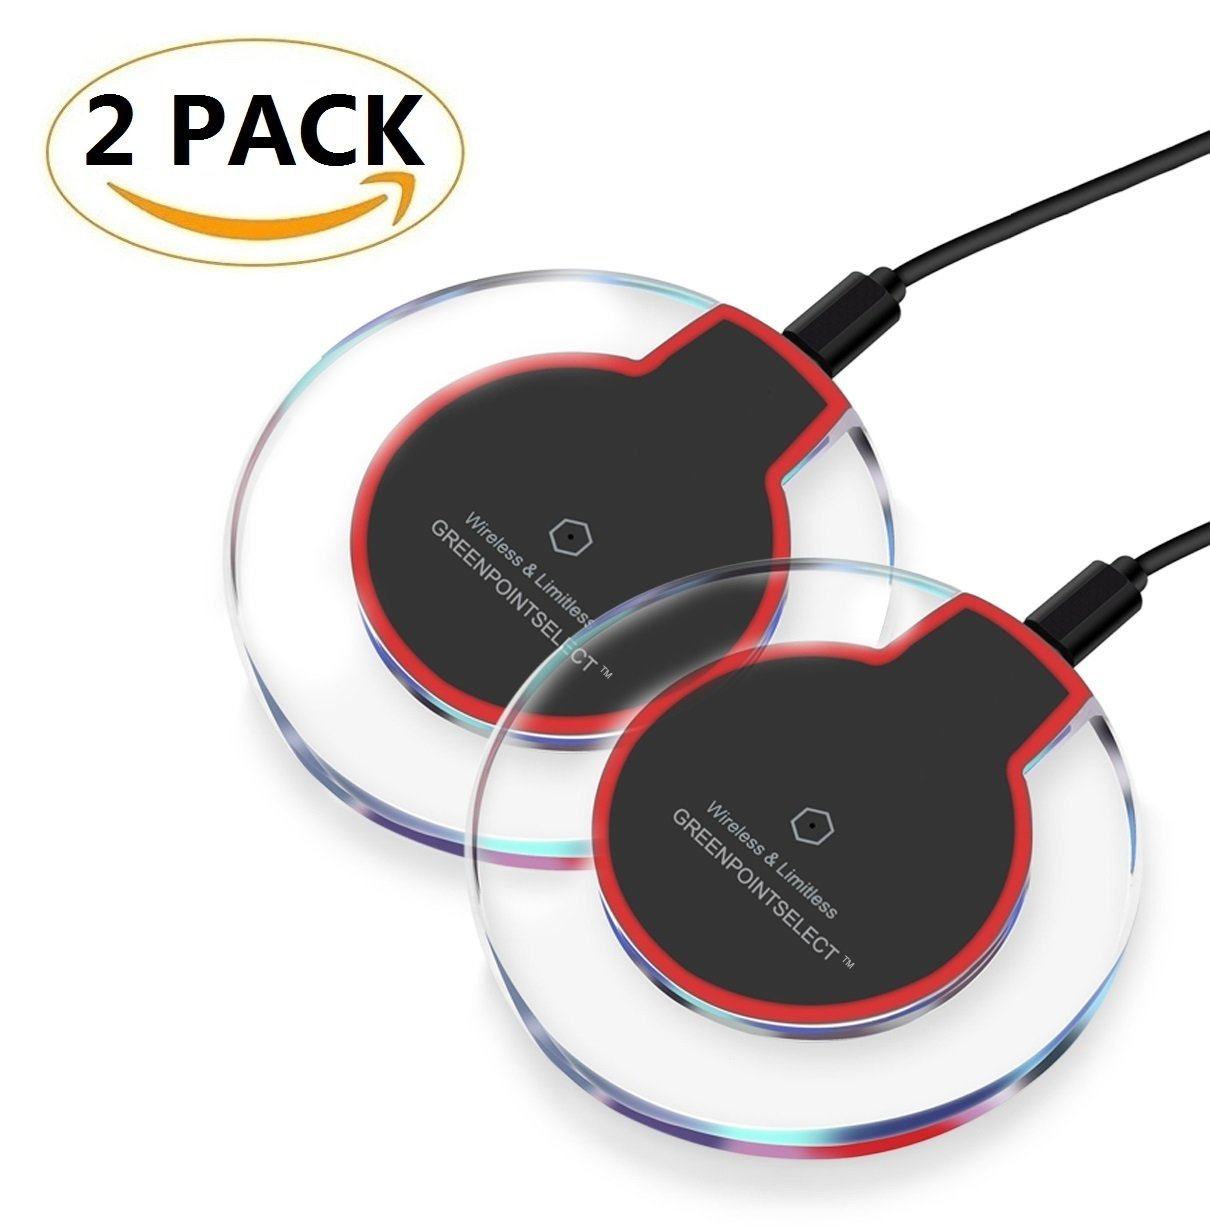 New Version GP Wireless Charger Charging Pad for iPhone 8 / 8 Plus, iPhone X, Galaxy Note 5, S7/S7 Edge/S6/S6 Edge/S6 Edge Plus, Nexus 4/5/6/7, LG G3 and Other Devices (2 Pack) Greenpointselect Technology